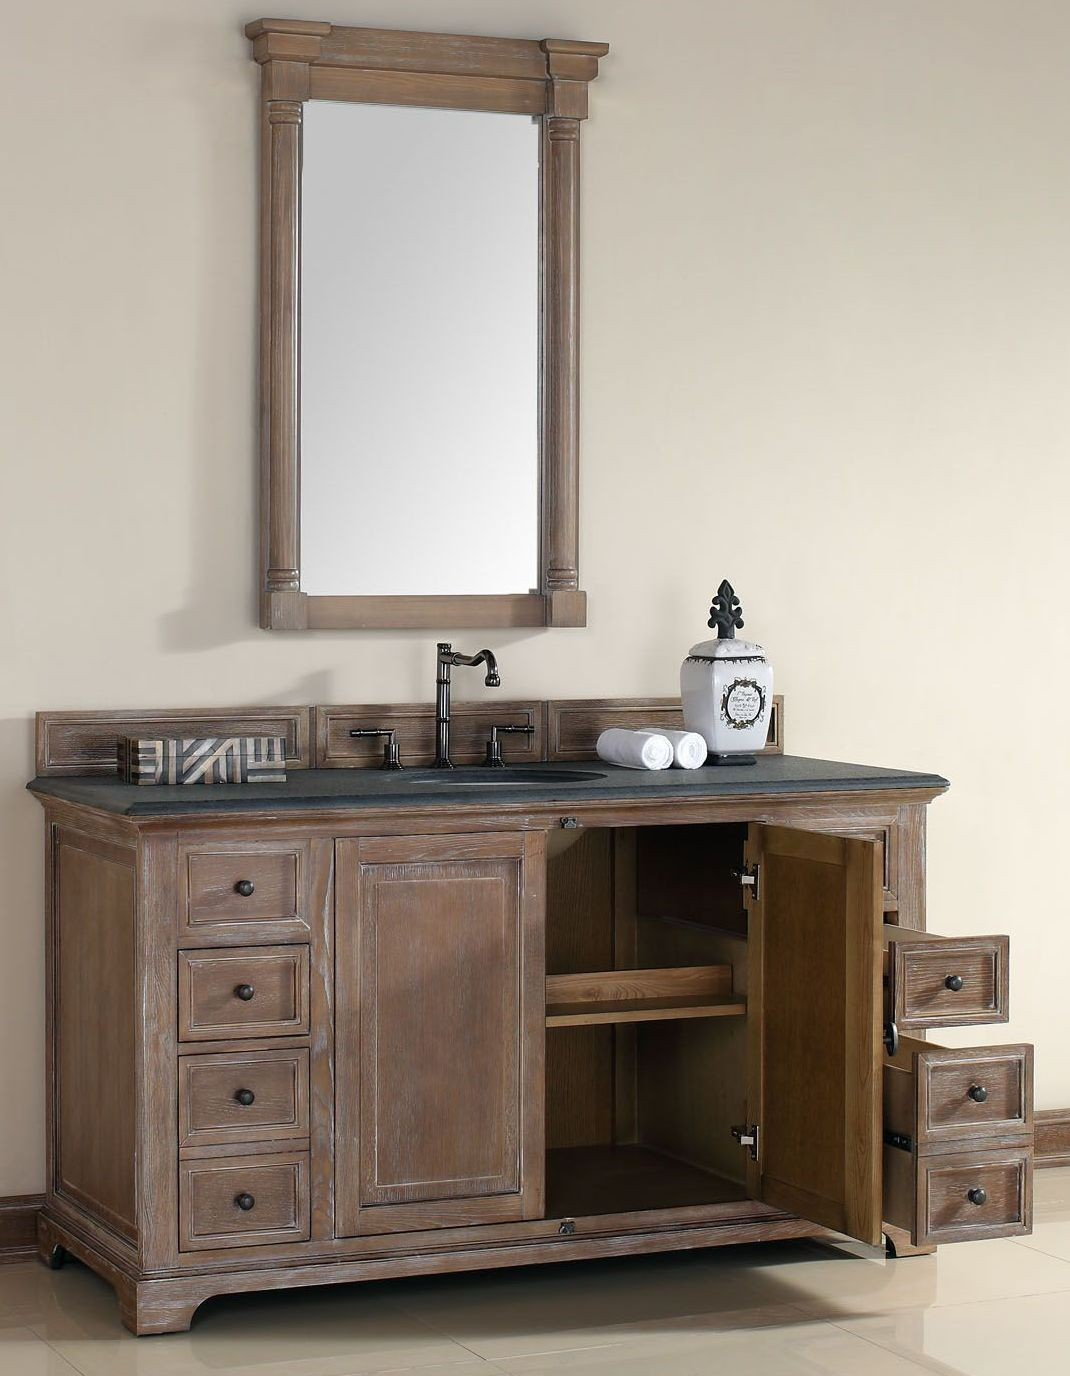 60 Providence Driftwood Black Rustic Top Vanity Cabinet With Sink From James Martin Coleman